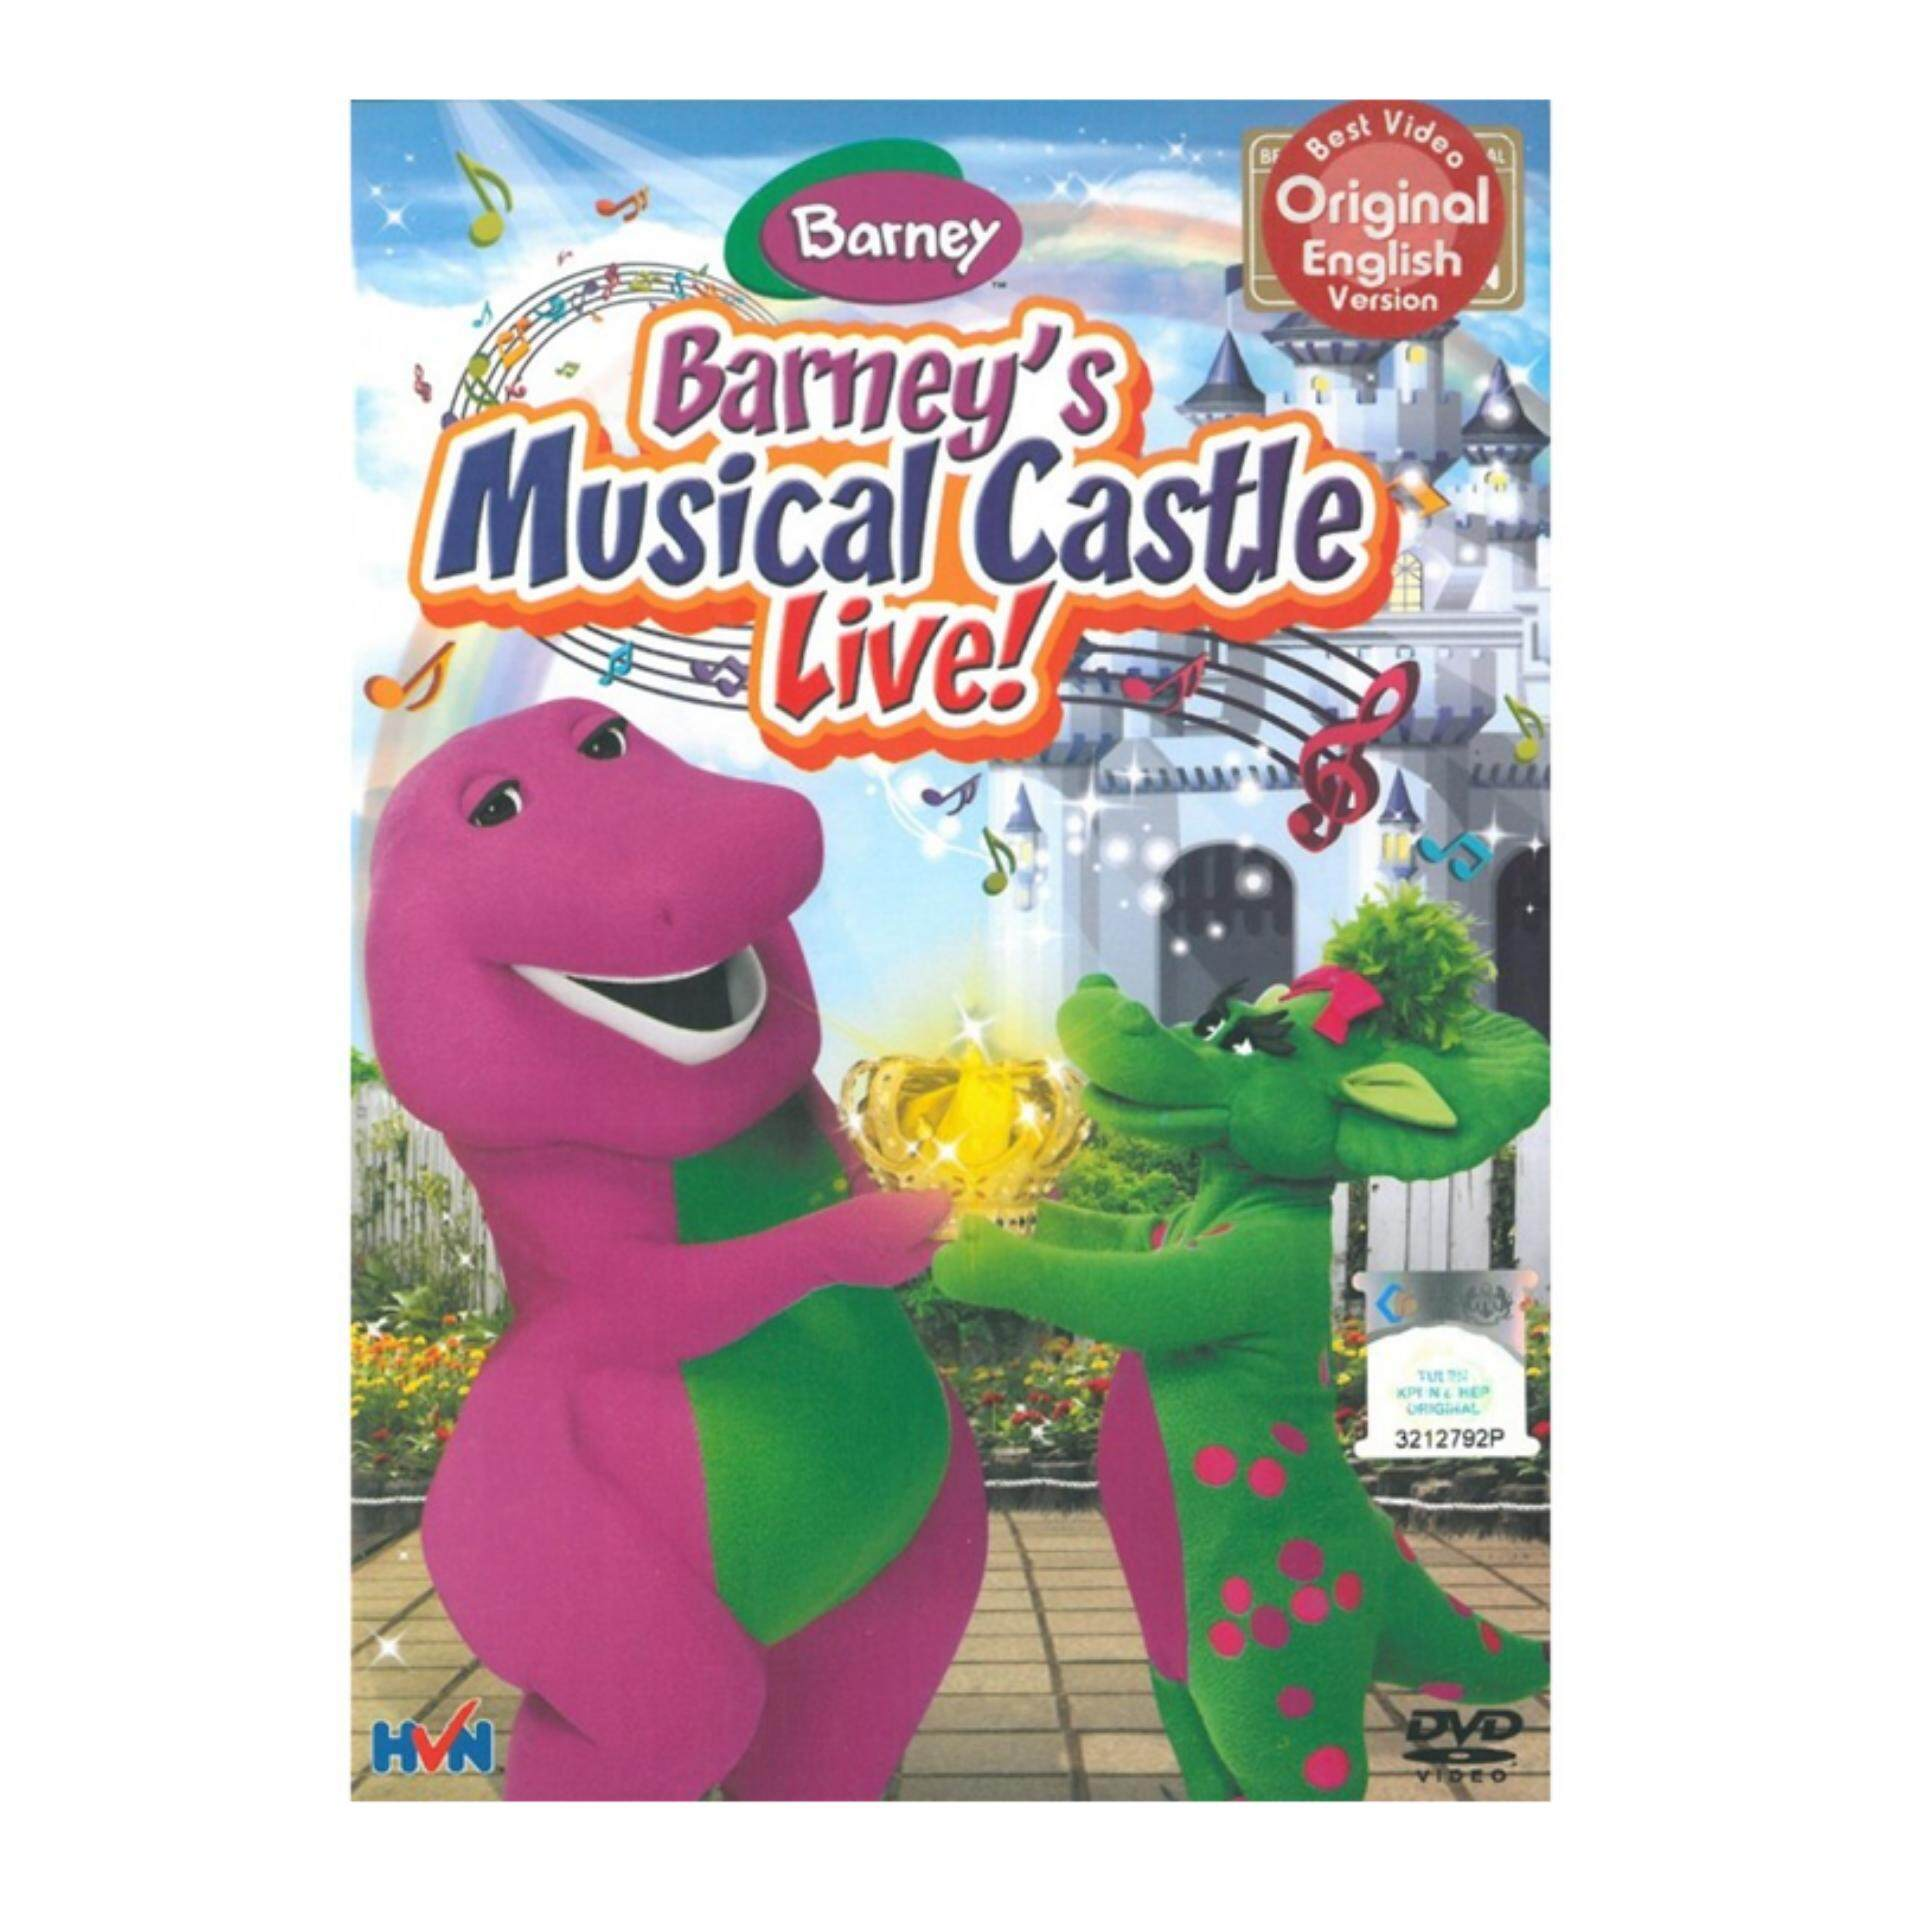 Barneys Musical Castle Live - DVD